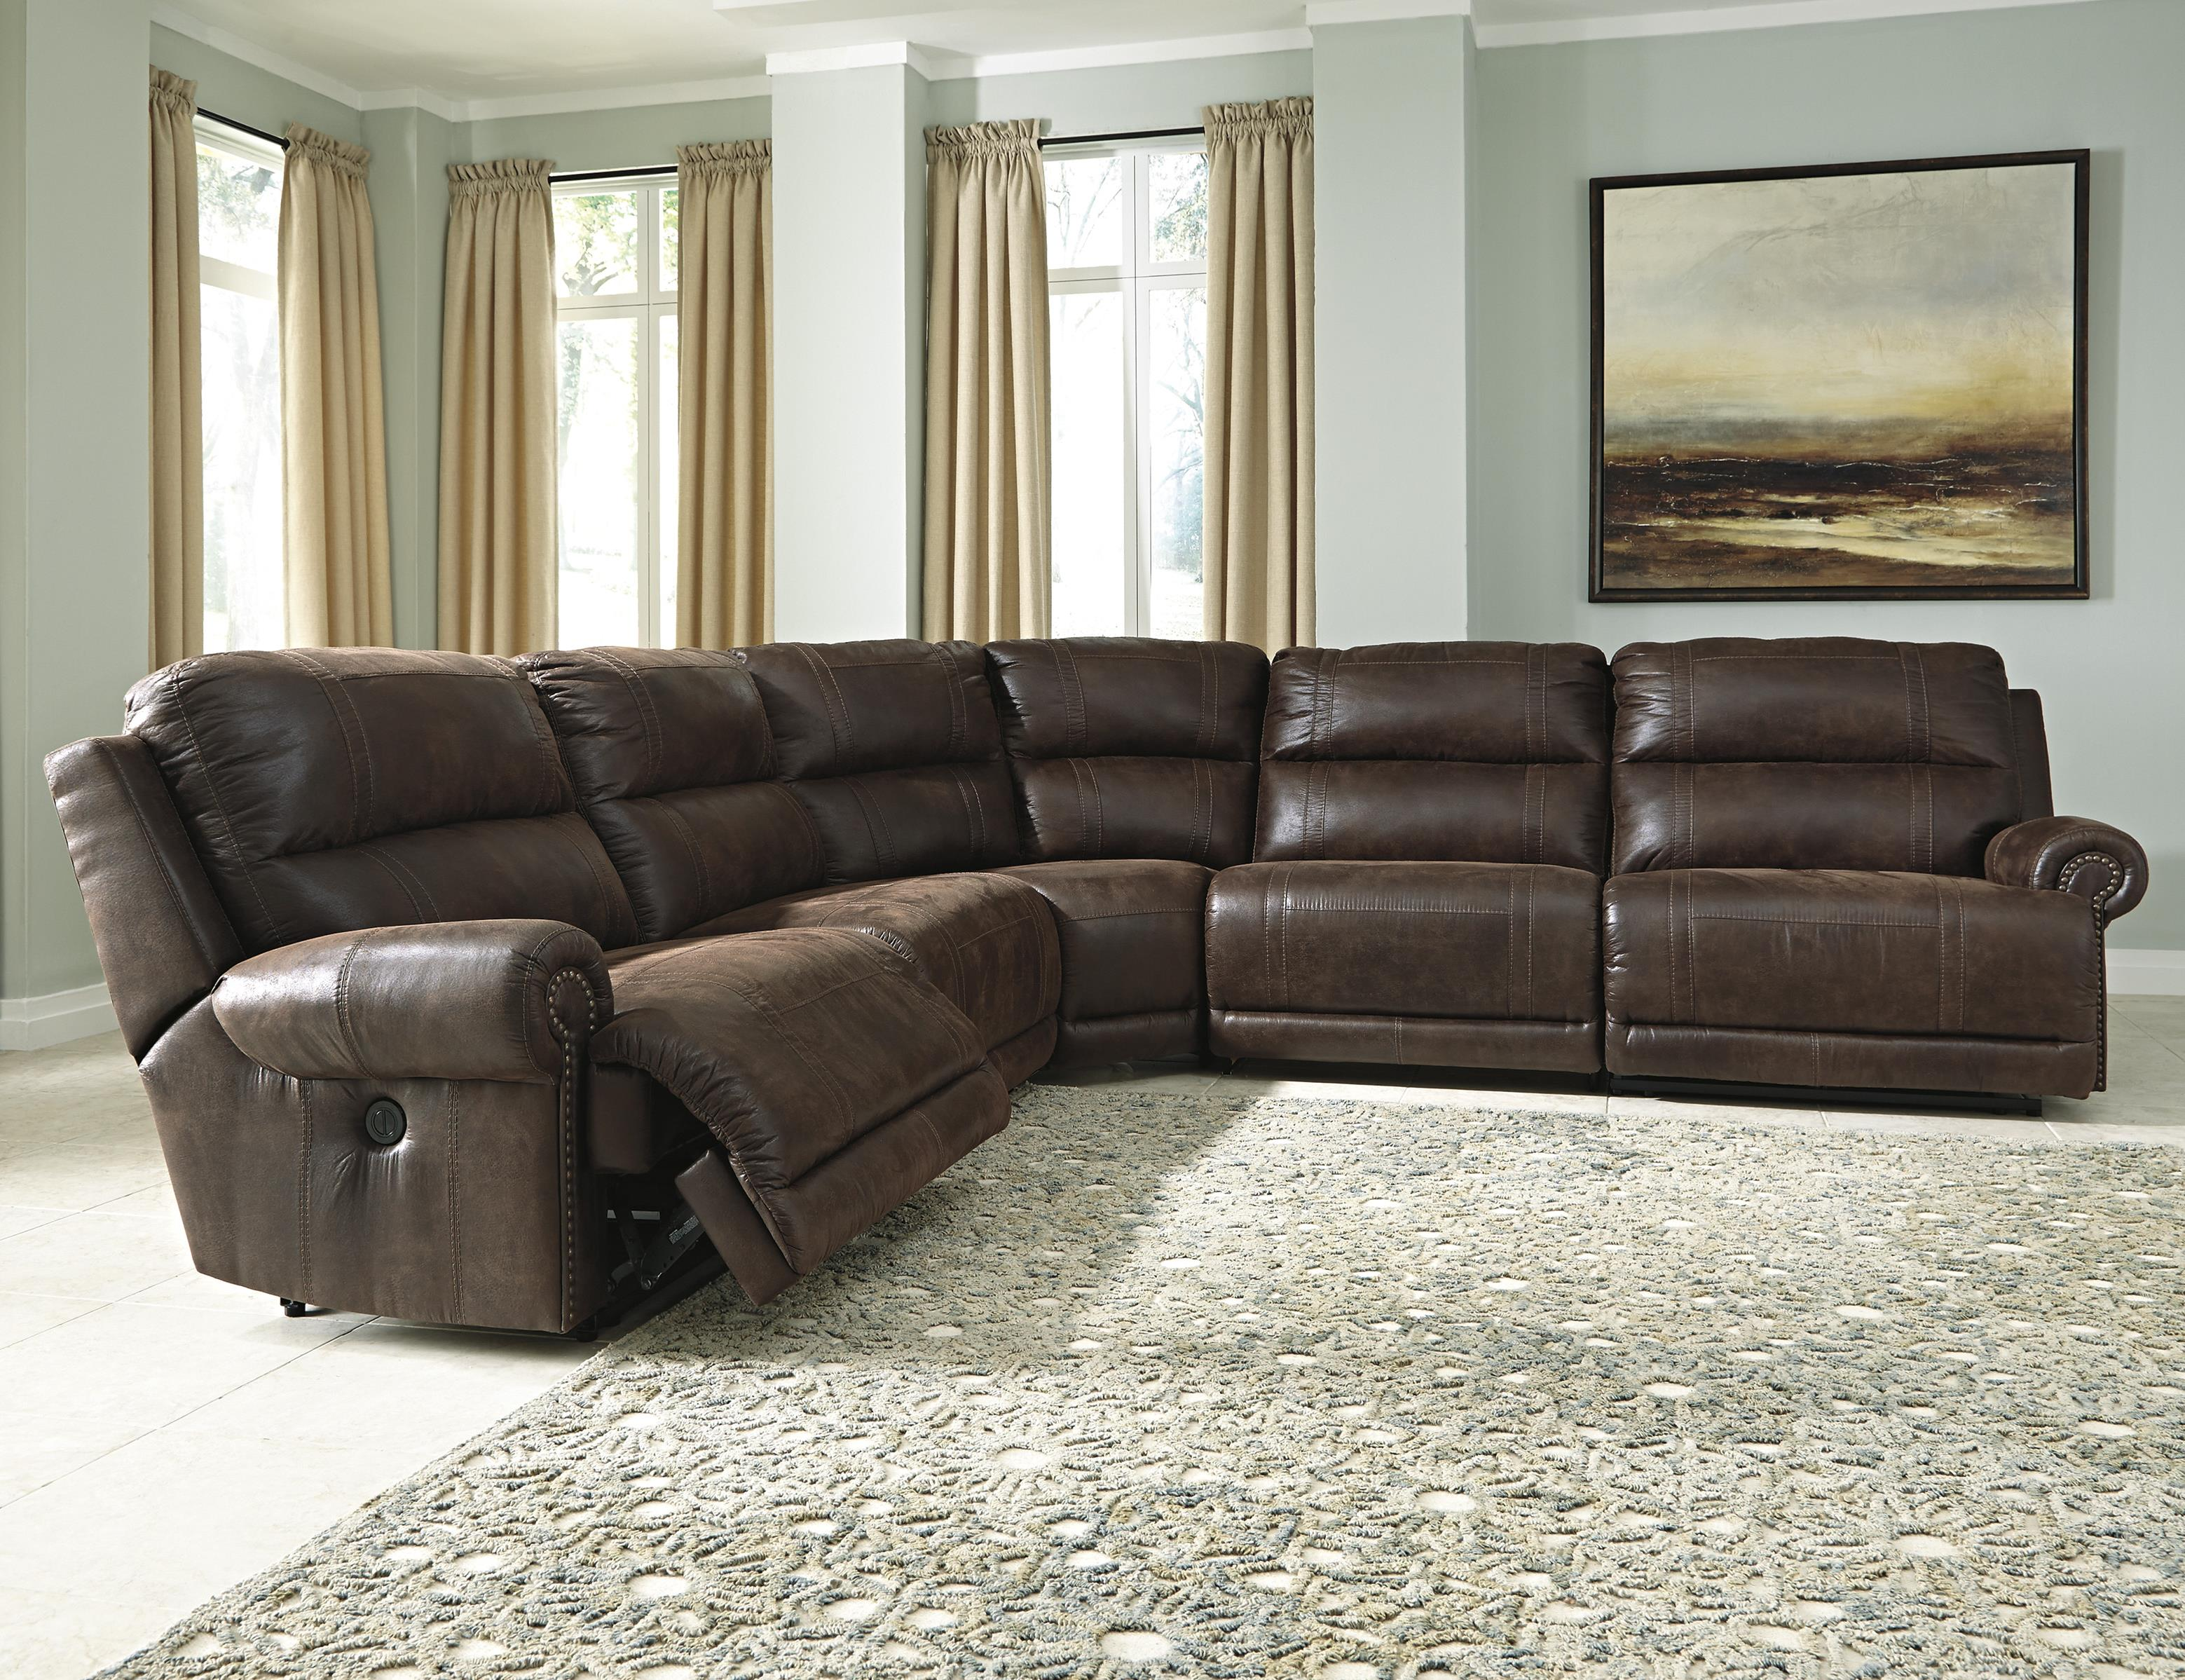 Signature Design by Ashley Luttrell 5-Piece Reclining Sectional - Item Number: 9310140+2x46+77+41